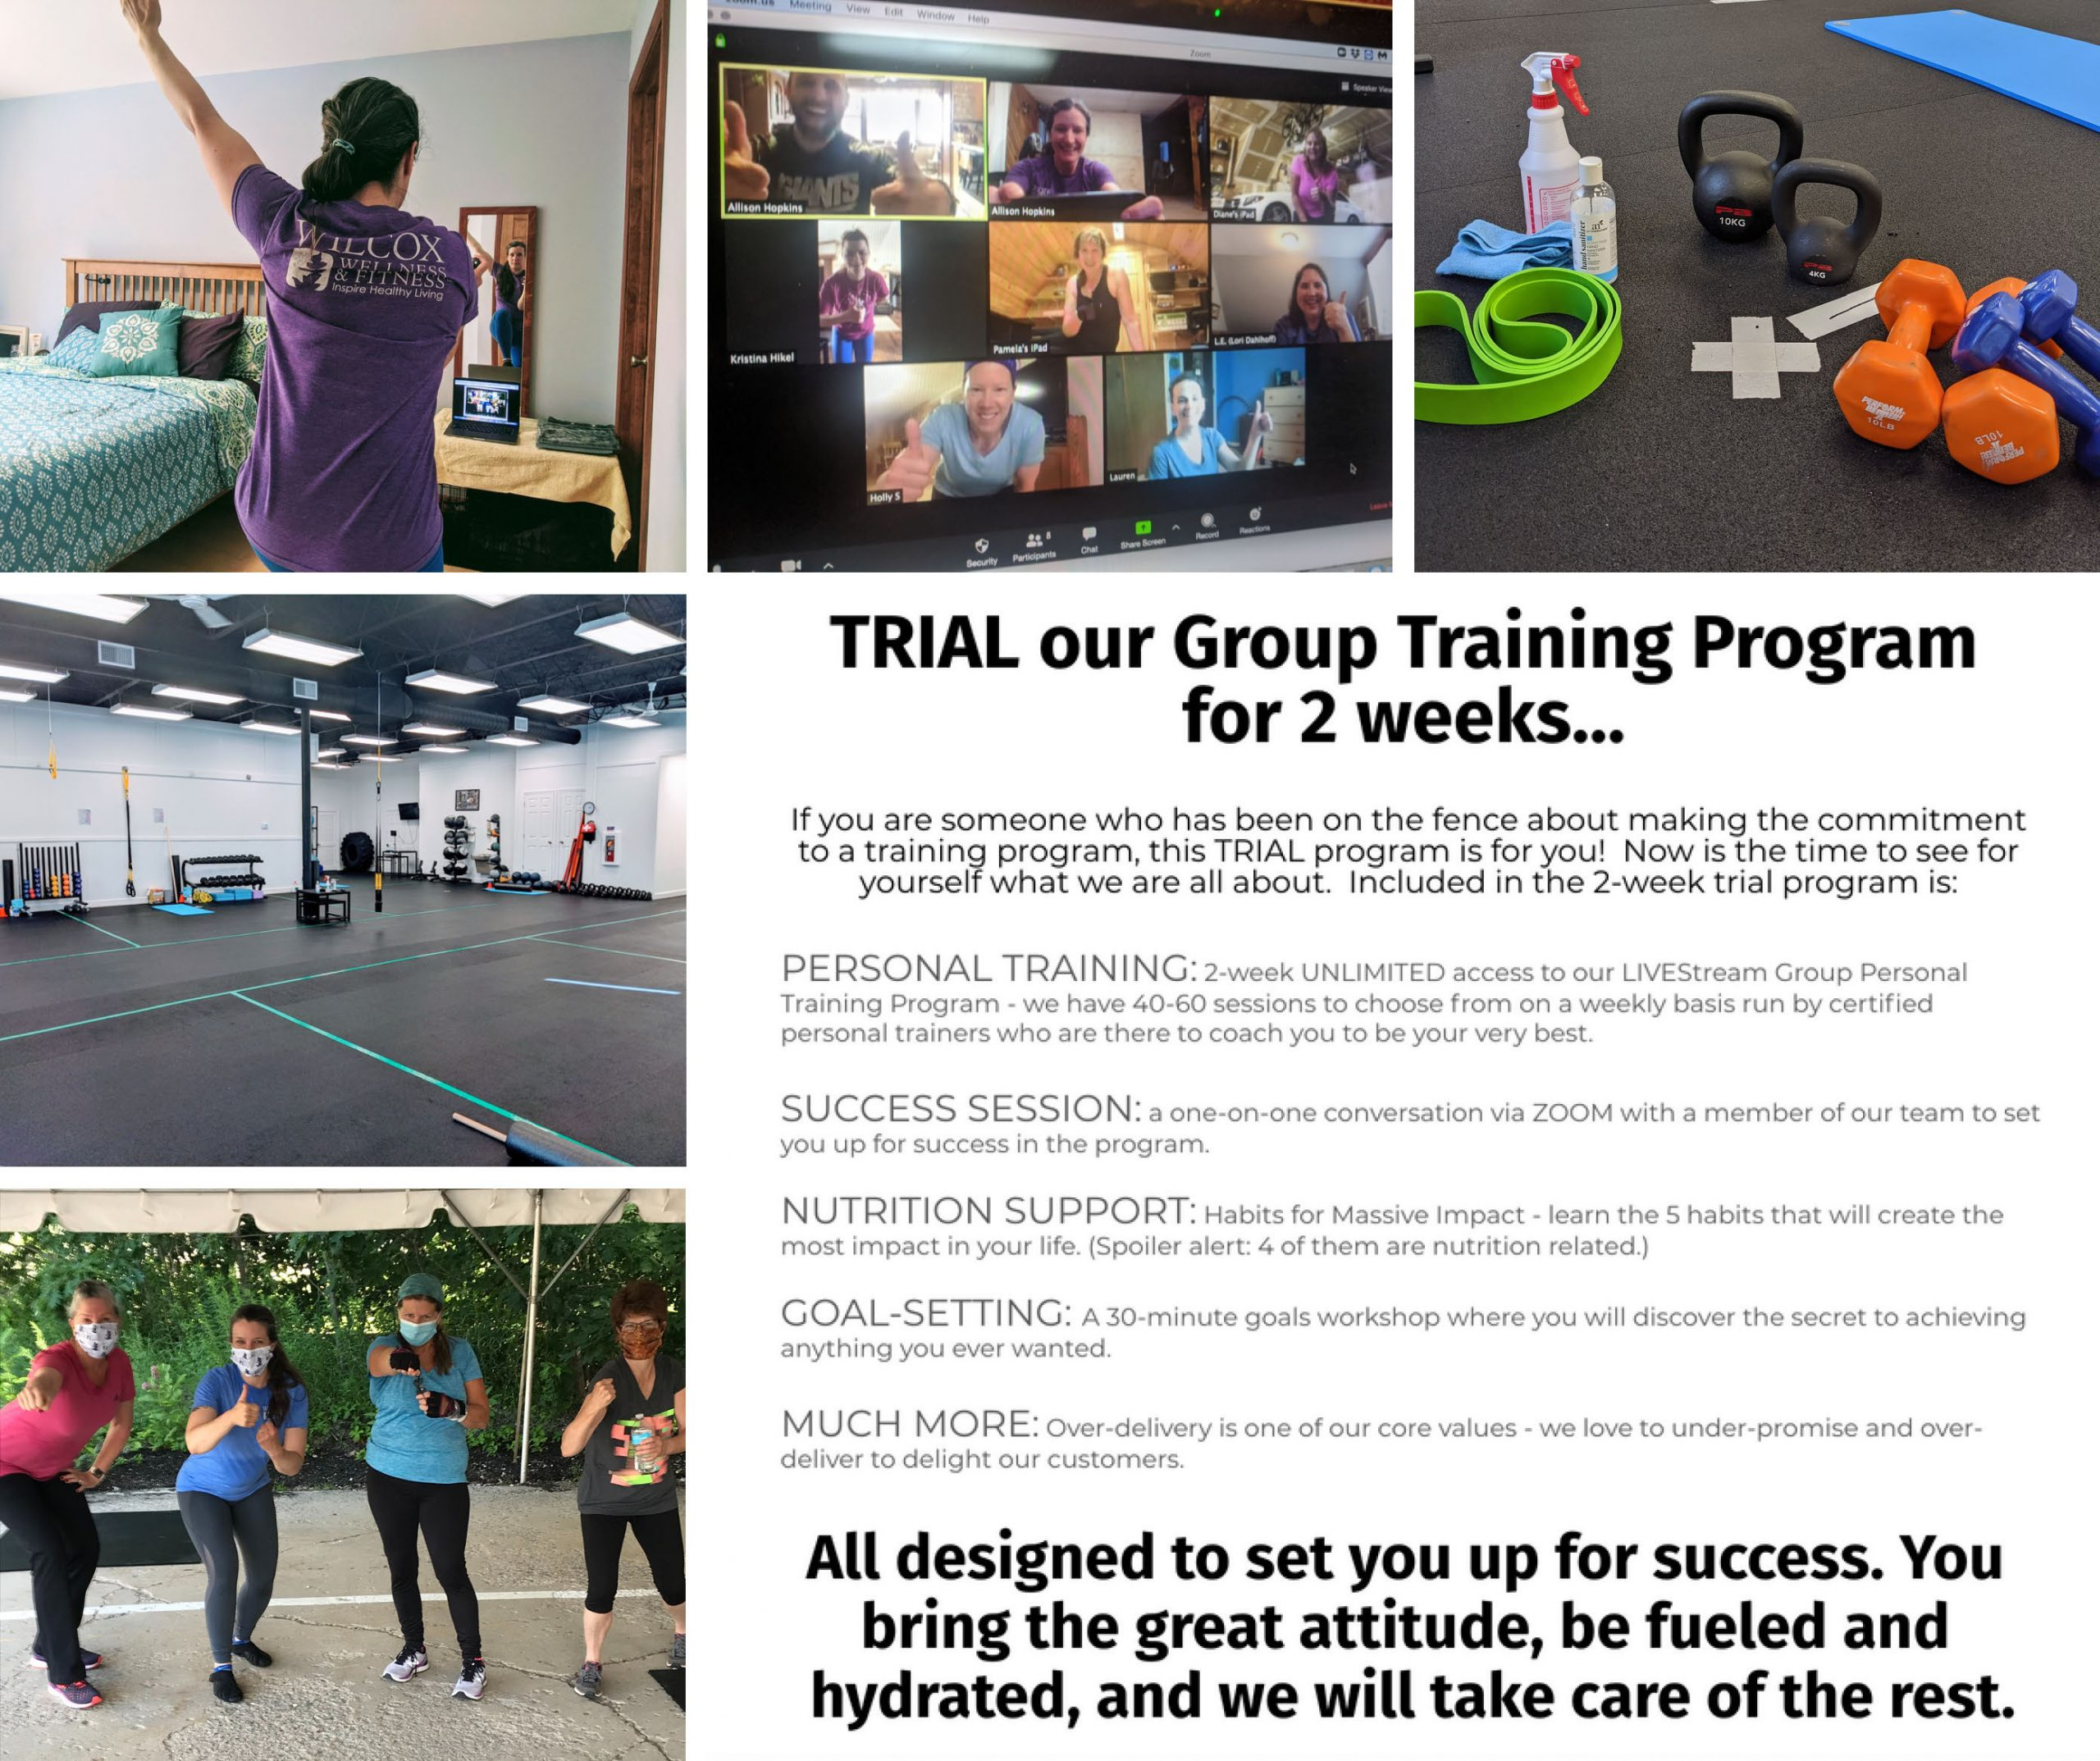 Wilcox Wellness & Fitness: 2 week TRIAL program